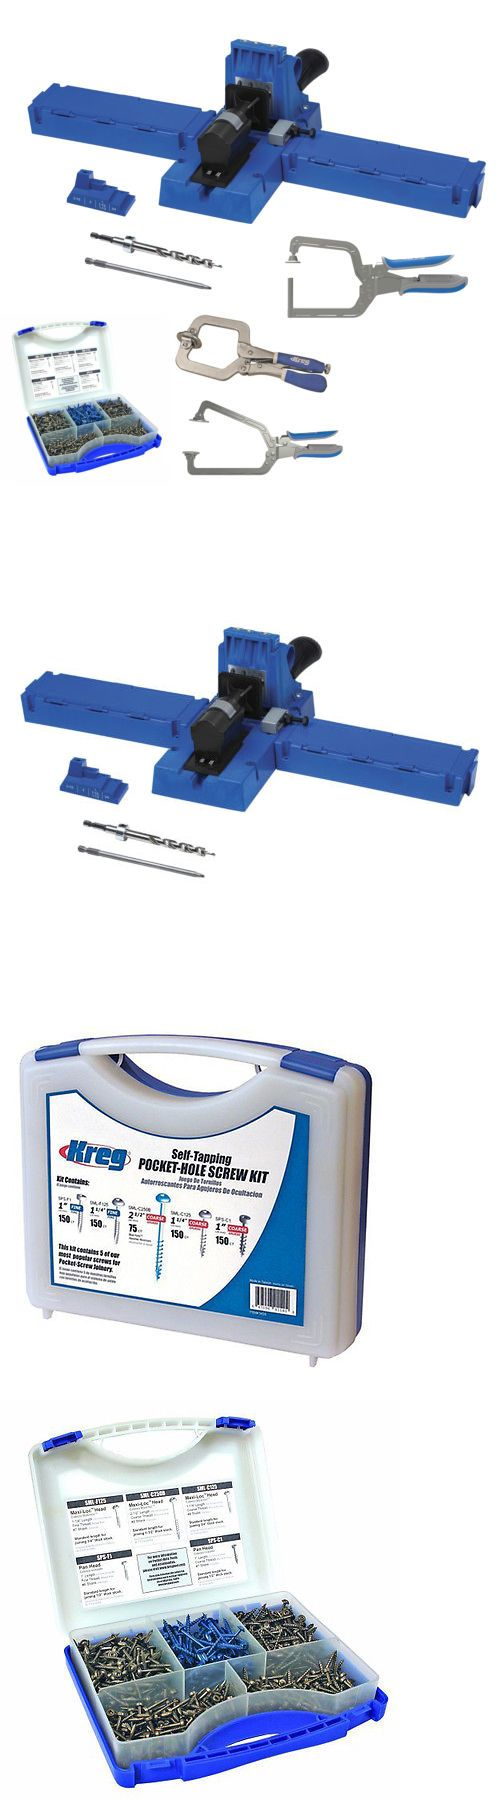 Jigs and Templates 179686: Kreg K5 Pocket-Hole Jig W Screw Kit And 3 Piece Clamp Set -> BUY IT NOW ONLY: $229.99 on eBay!